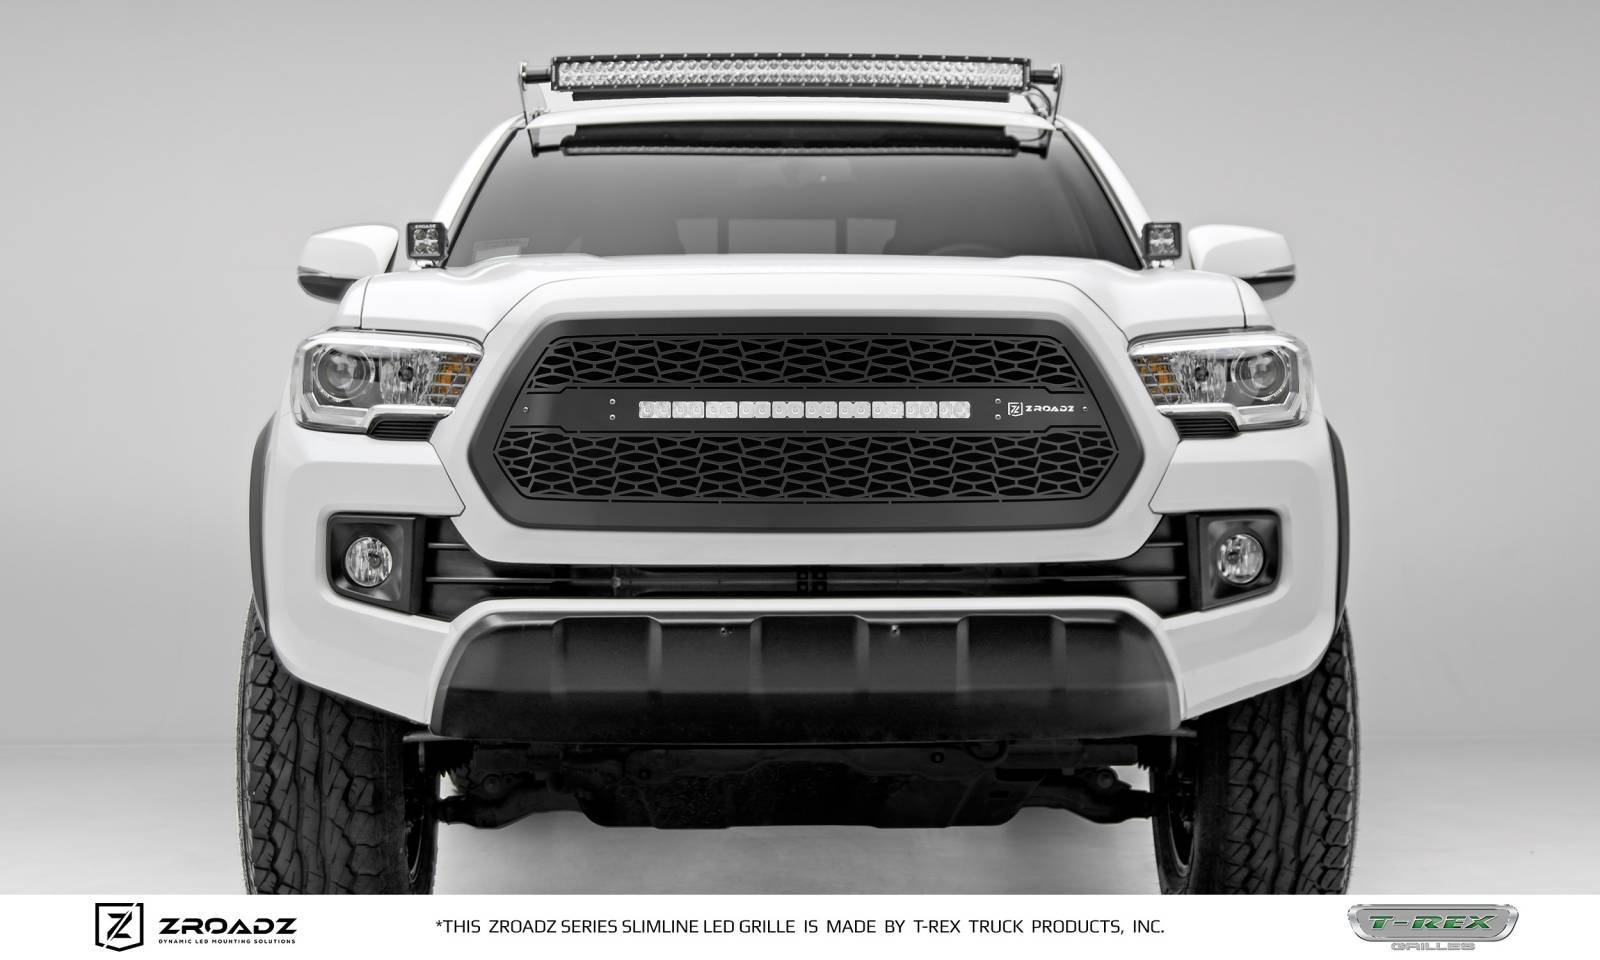 T-REX Grilles - Toyota Tacoma - ZROADZ Series - Main Insert - Grille w/ One 20 Inch Slim Line Single Row LED Light Bar - Part# Z319411